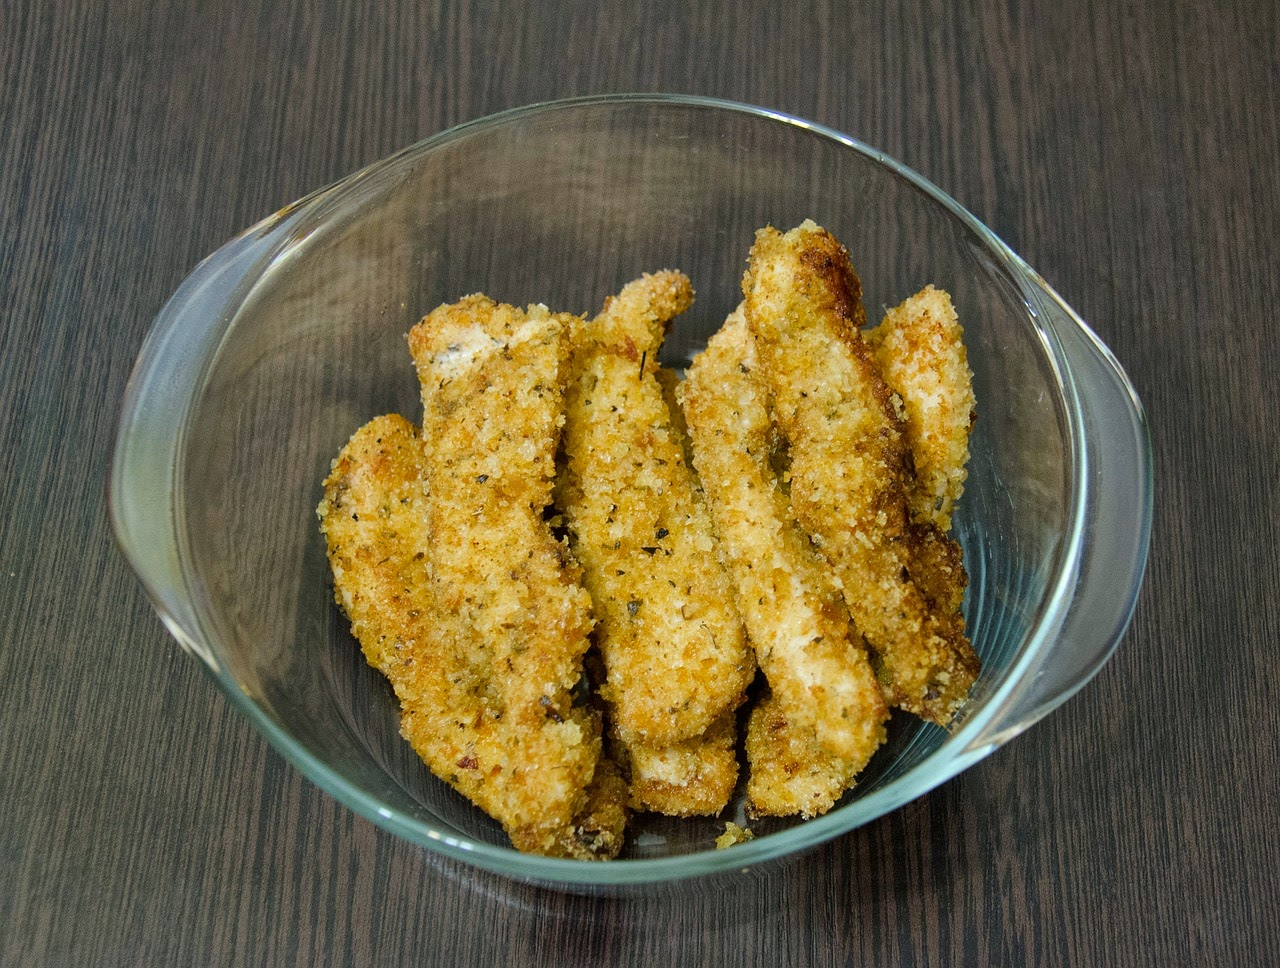 Bowl of Low-Carb Chicken Strips Made with Crushed Pork Rinds